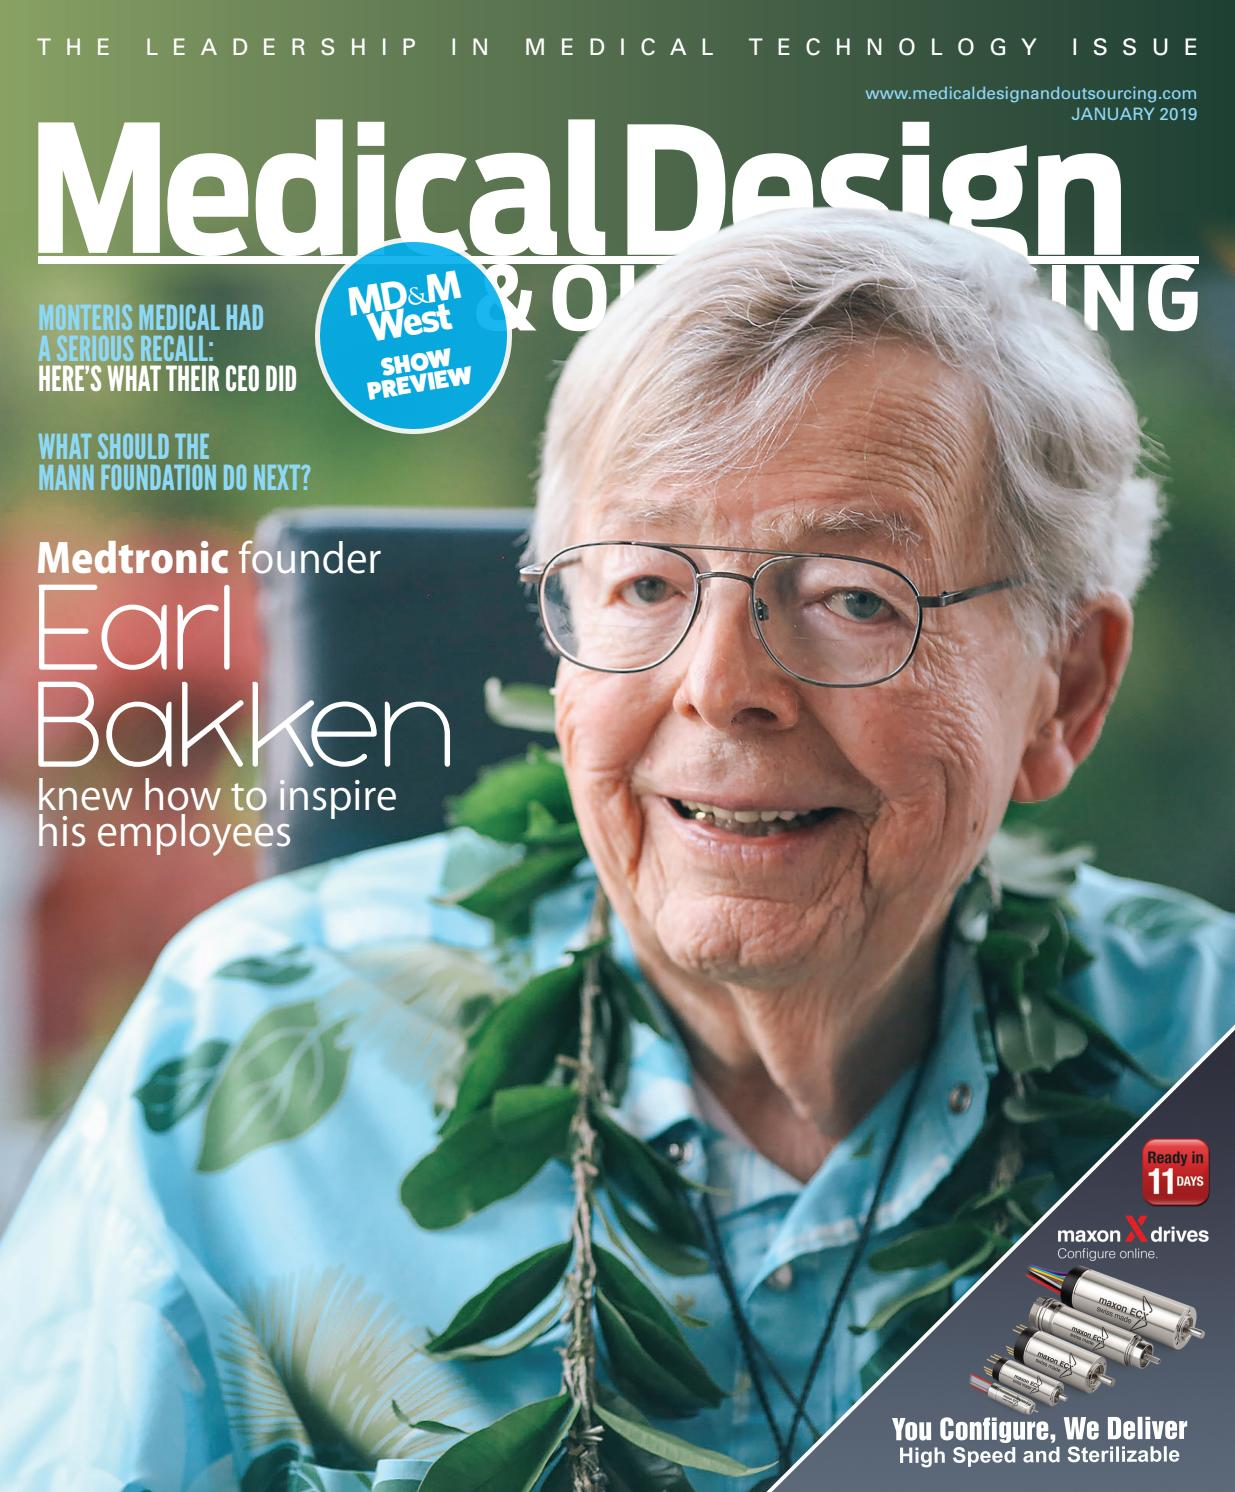 2eb4d563a6e2 Medical Design   Outsourcing - JANUARY 2019 by WTWH Media LLC - issuu